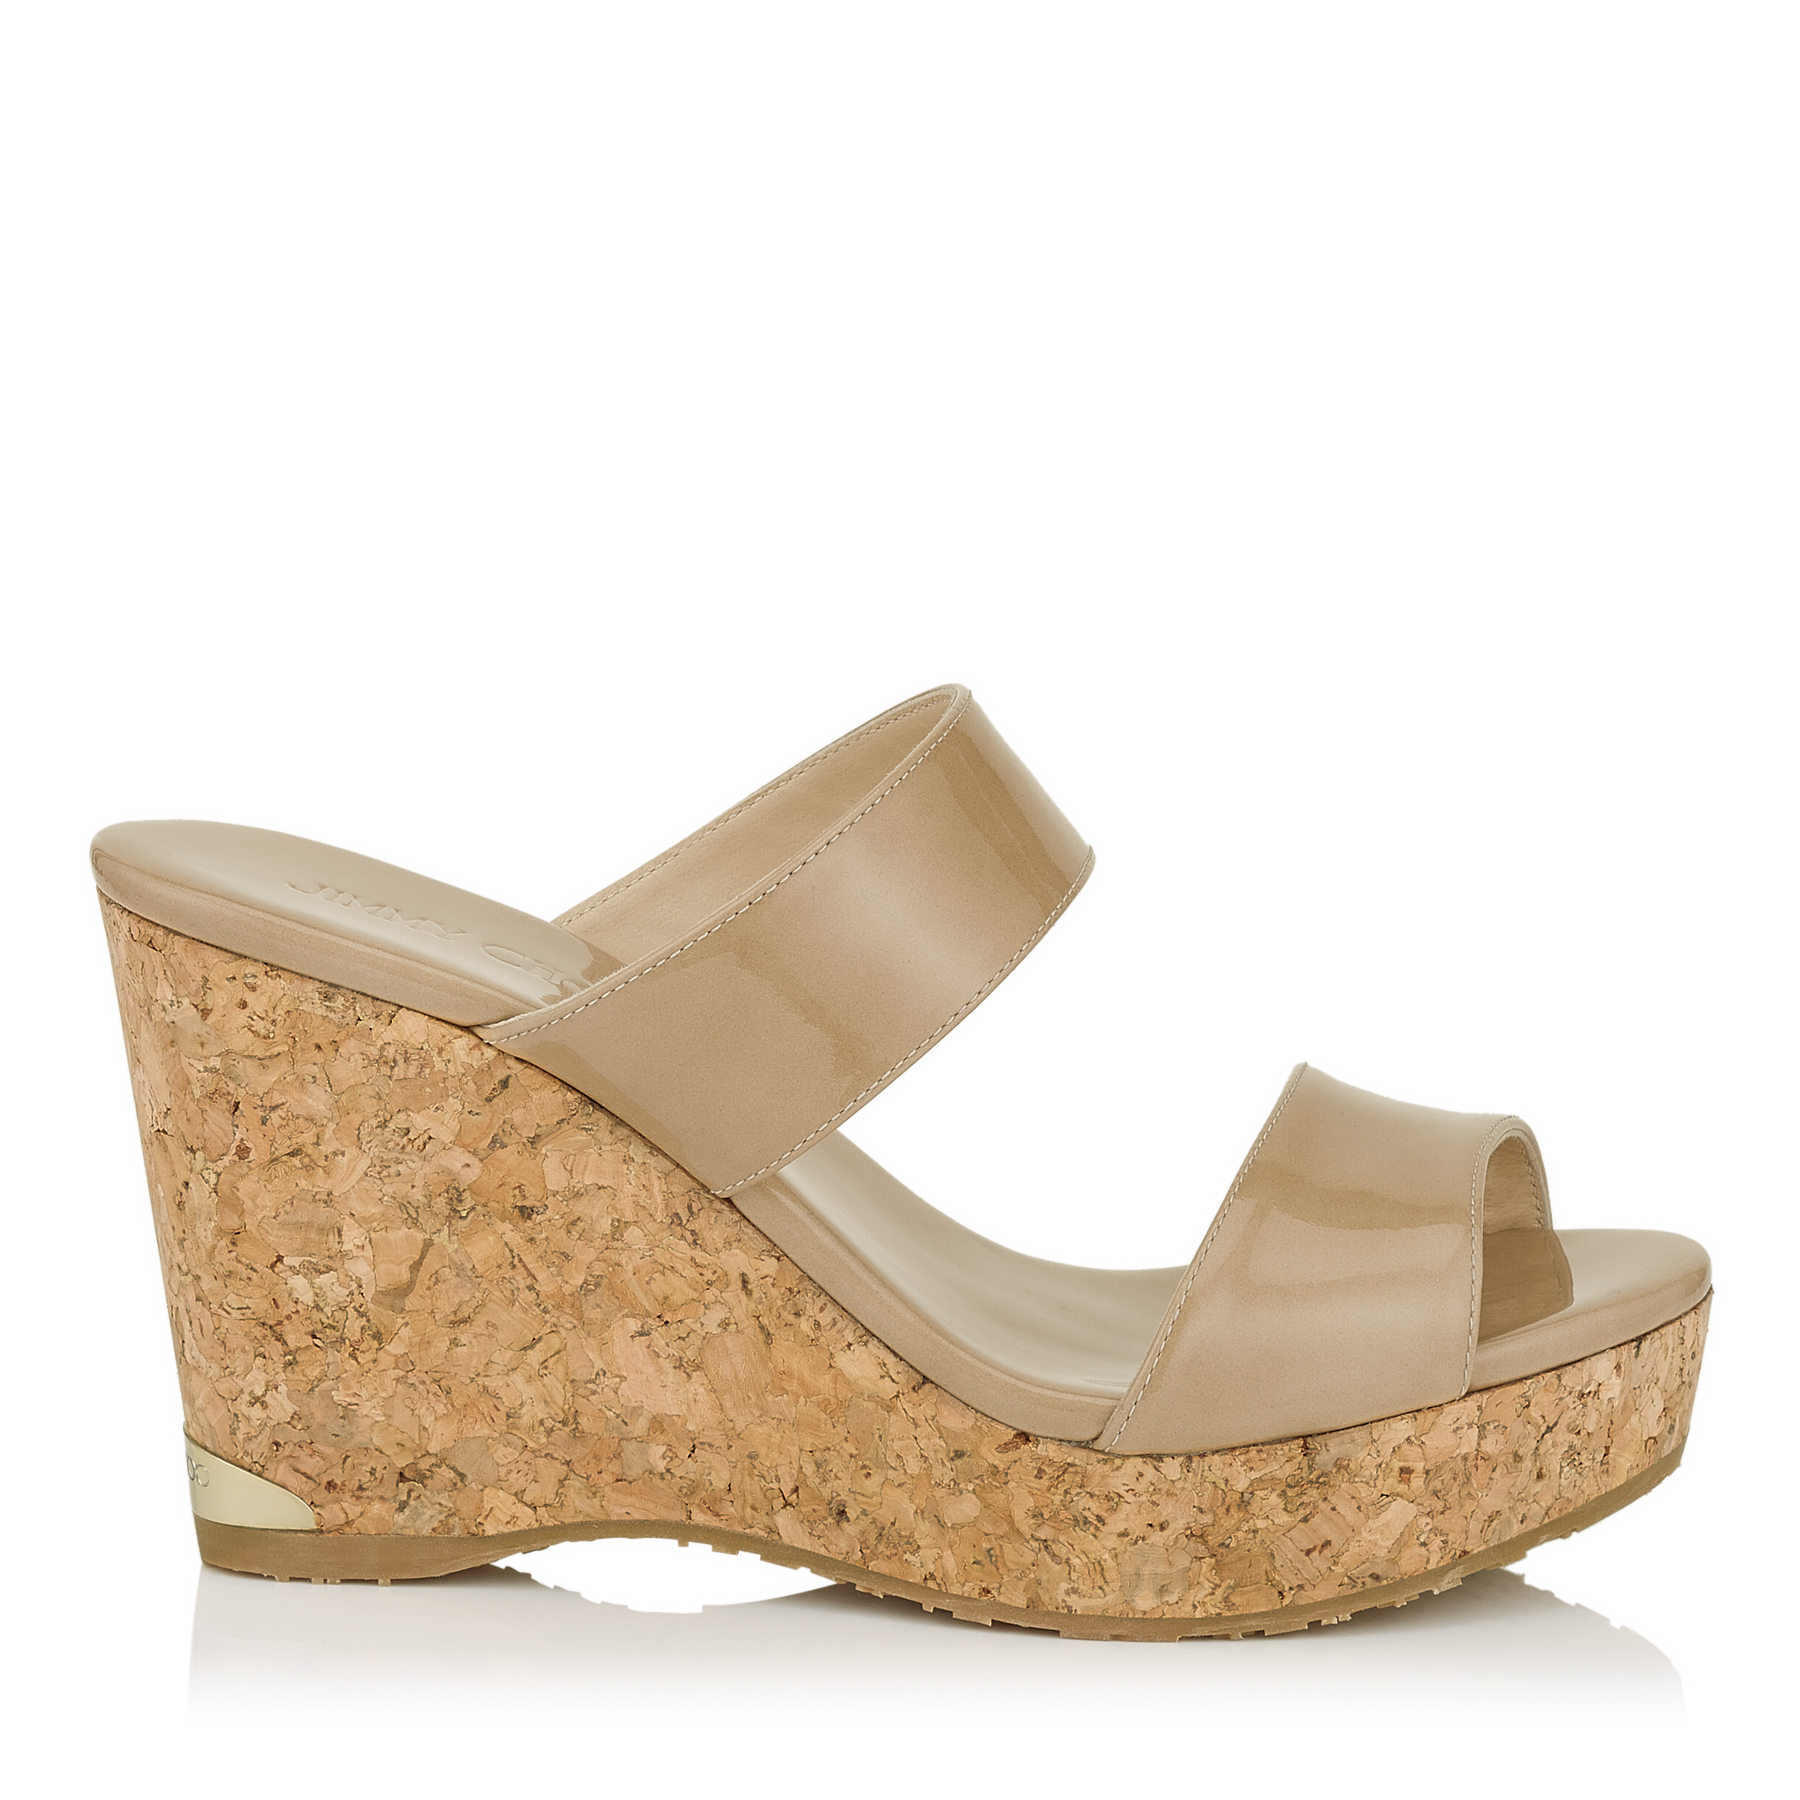 PARKER 100 Nude Patent Cork Wedges by Jimmy Choo